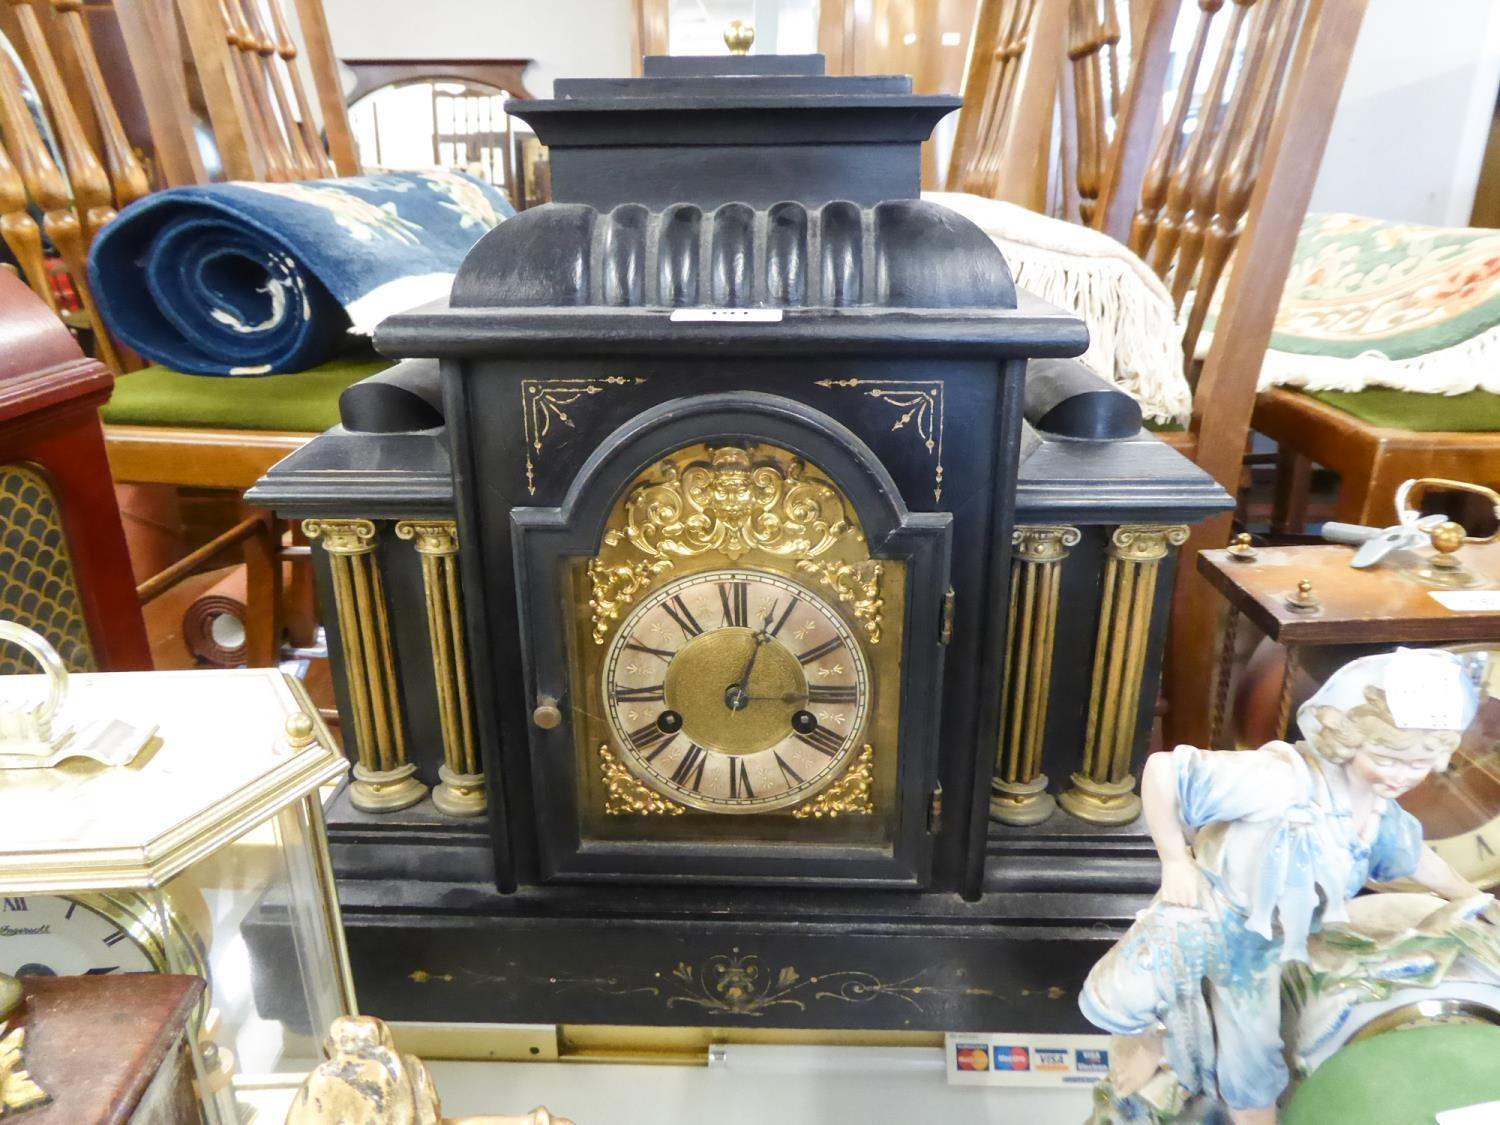 Lot 191 - EARLY 20th CENTURY EBONISED WOODEN CASED ARCHITECTURAL MANTEL CLOCK WITH H.A.C. LABELLED GERMAN